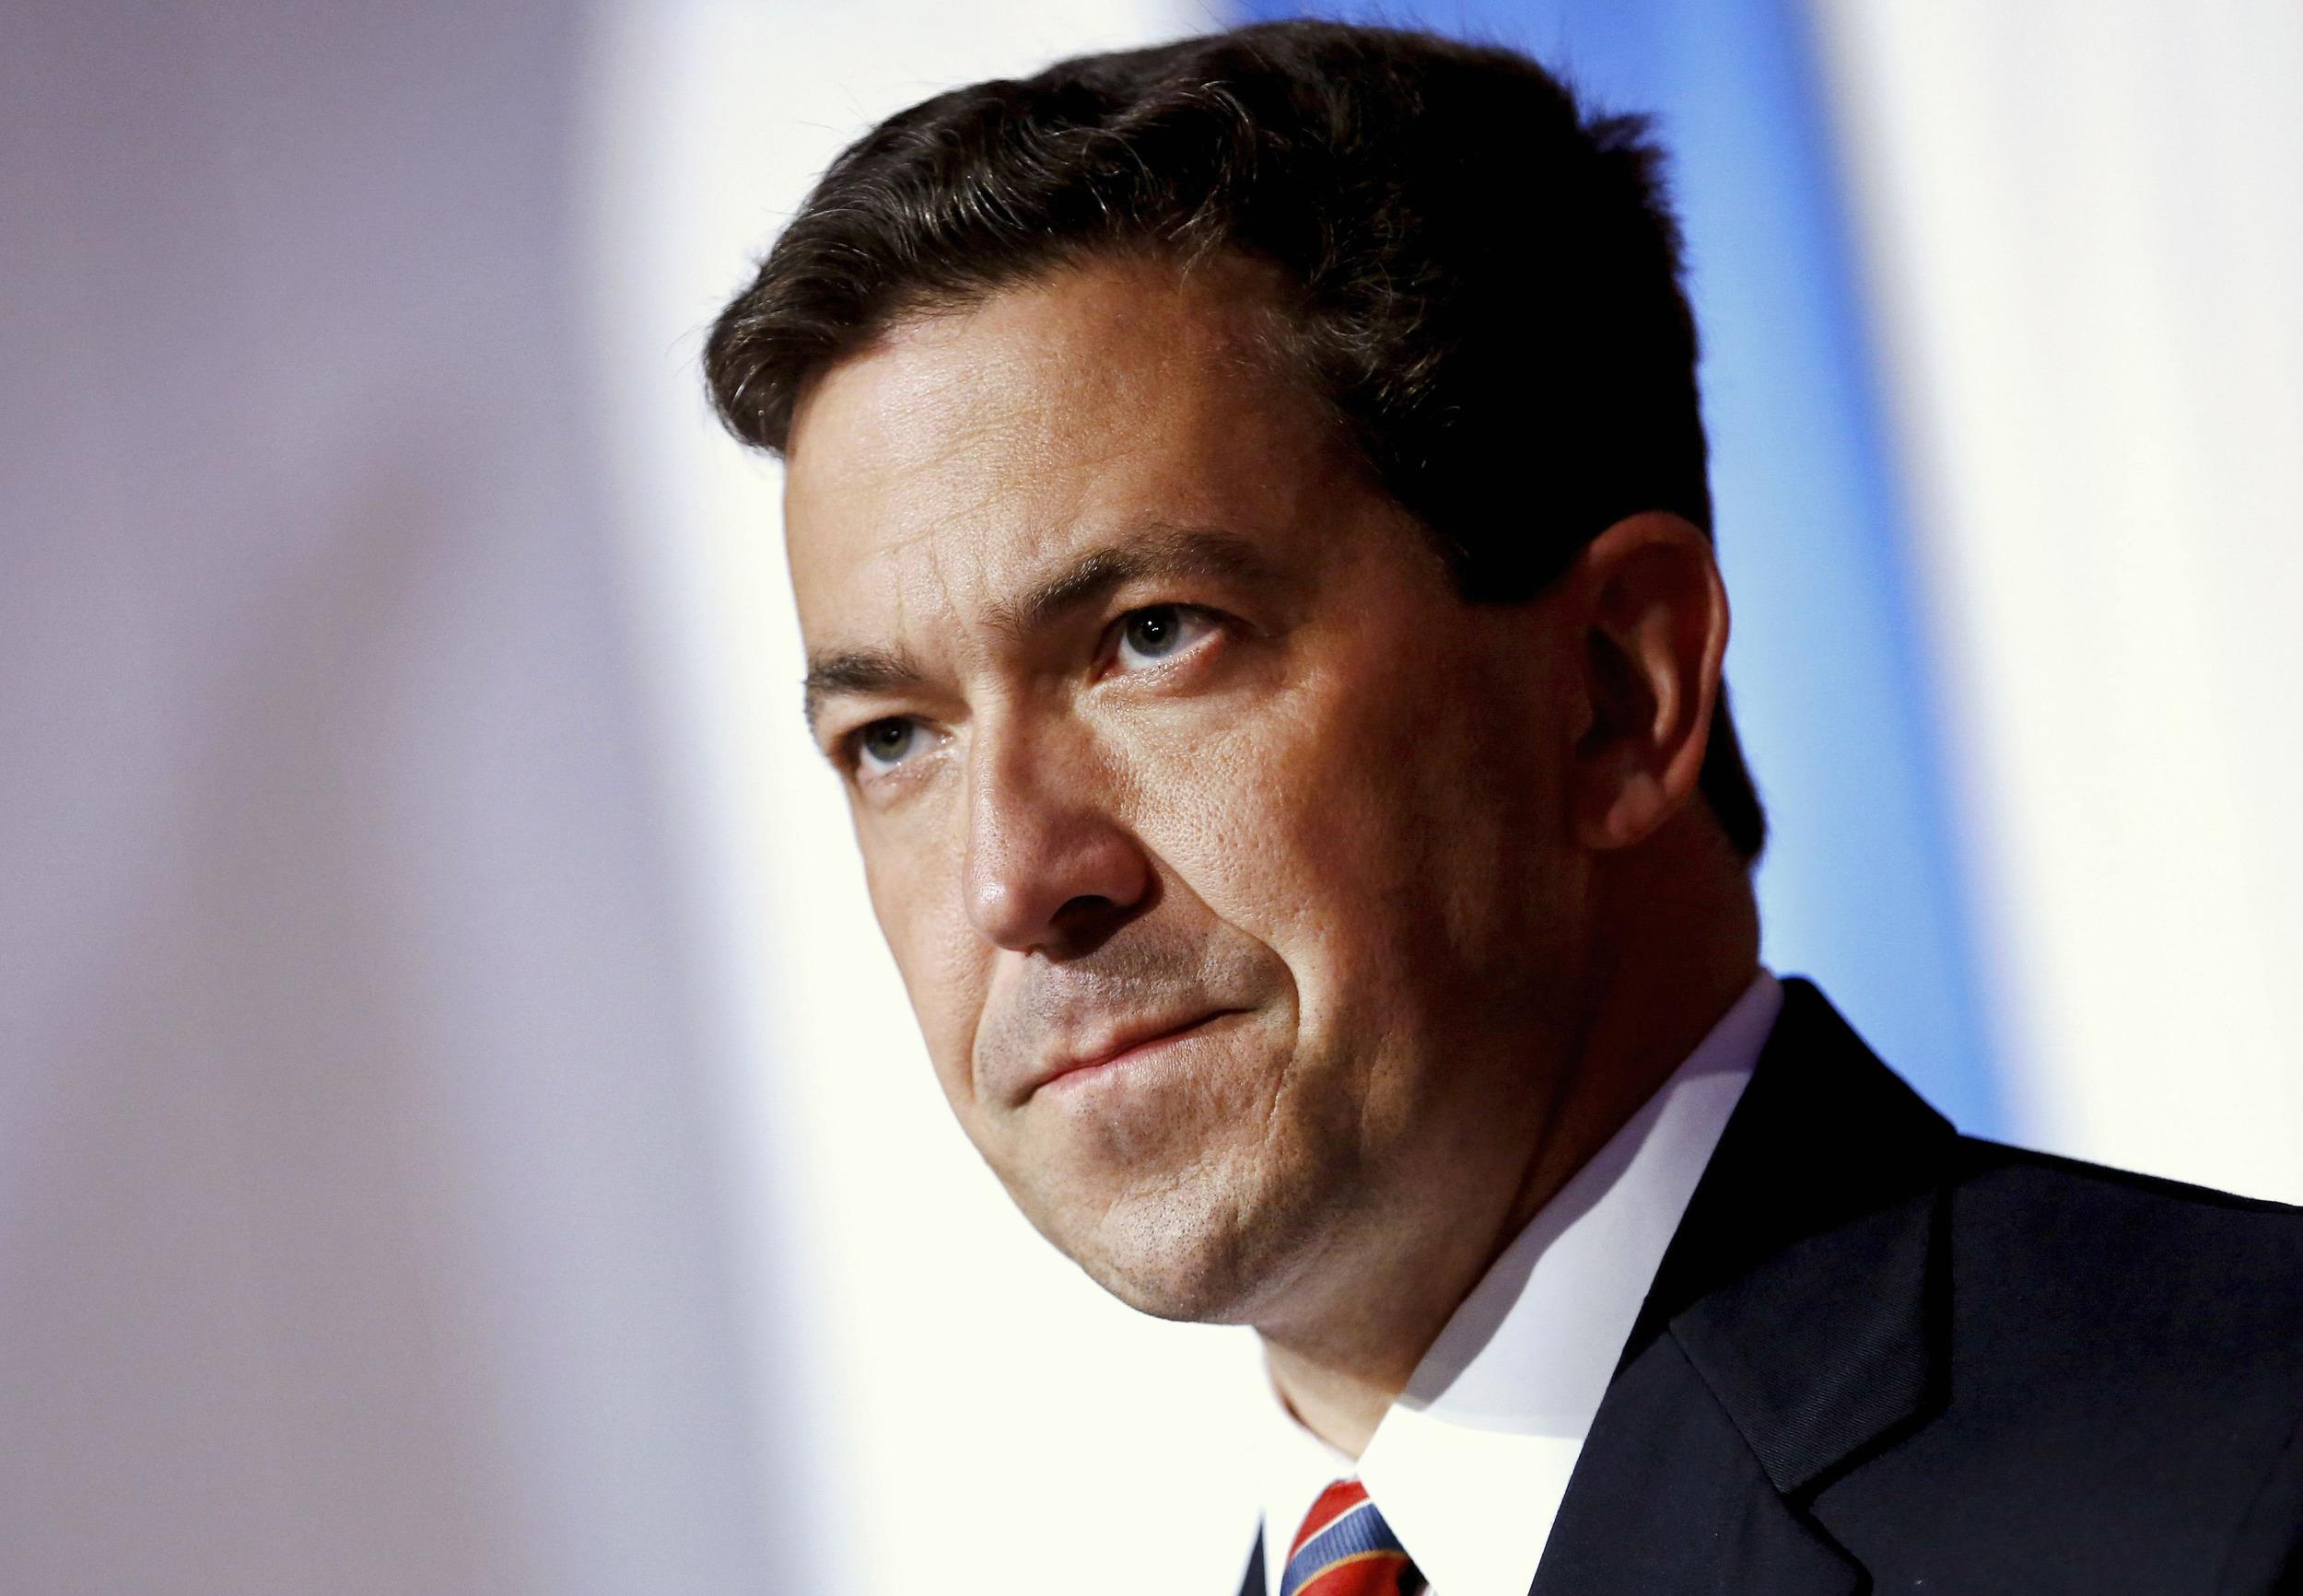 Image: File photo of McDaniel delivering a concession speech in Hattiesburg